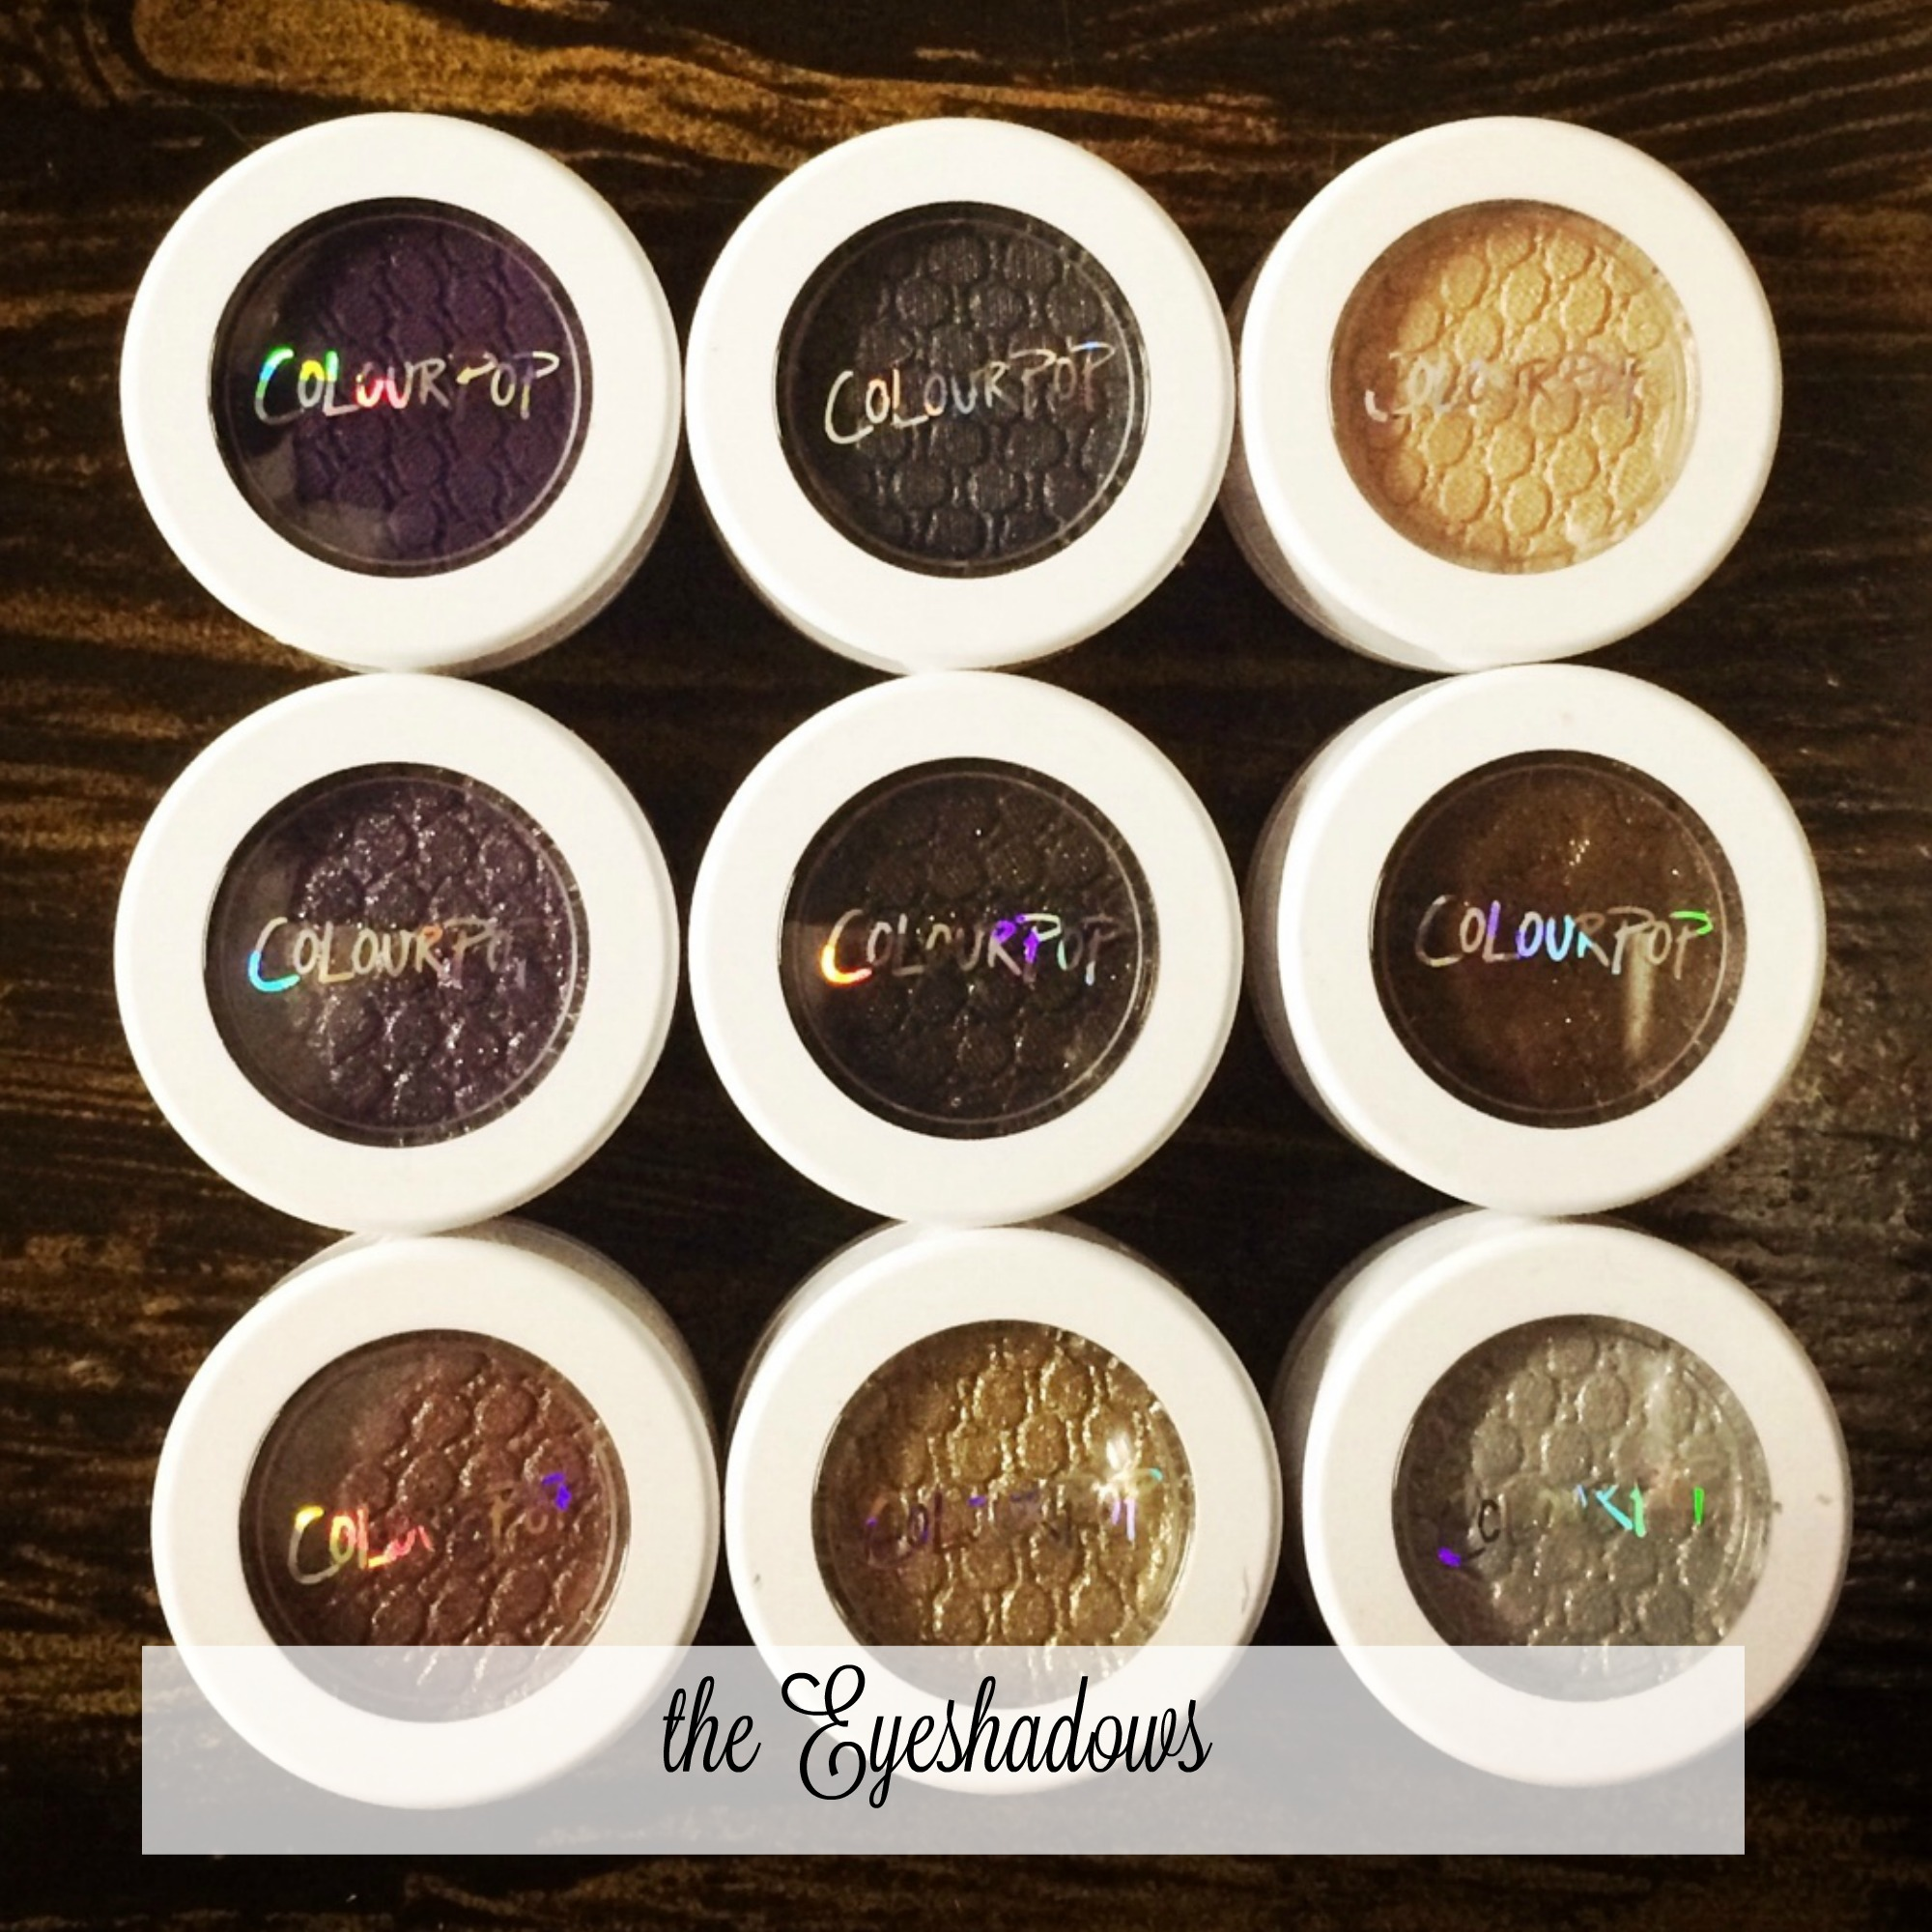 colourpop-holiday-worldbridemagazine-2